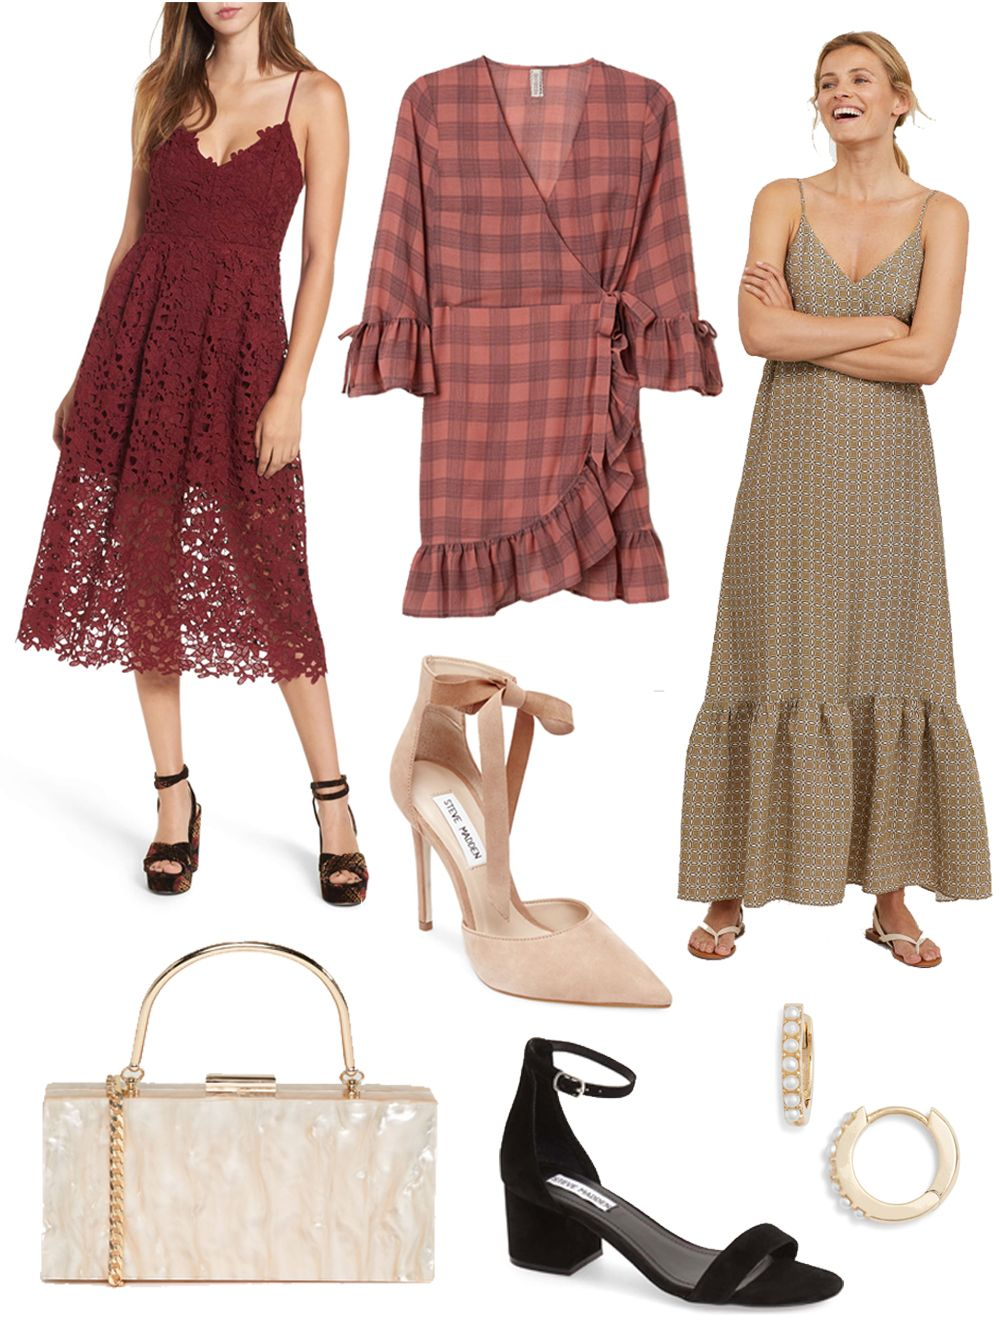 Fall Wedding Guest Dresses For Every Budget The Freckled Life Maxi Dress Wedding Guest Fall Wedding Guest Dress Fall Wedding Guest [ 1334 x 1000 Pixel ]